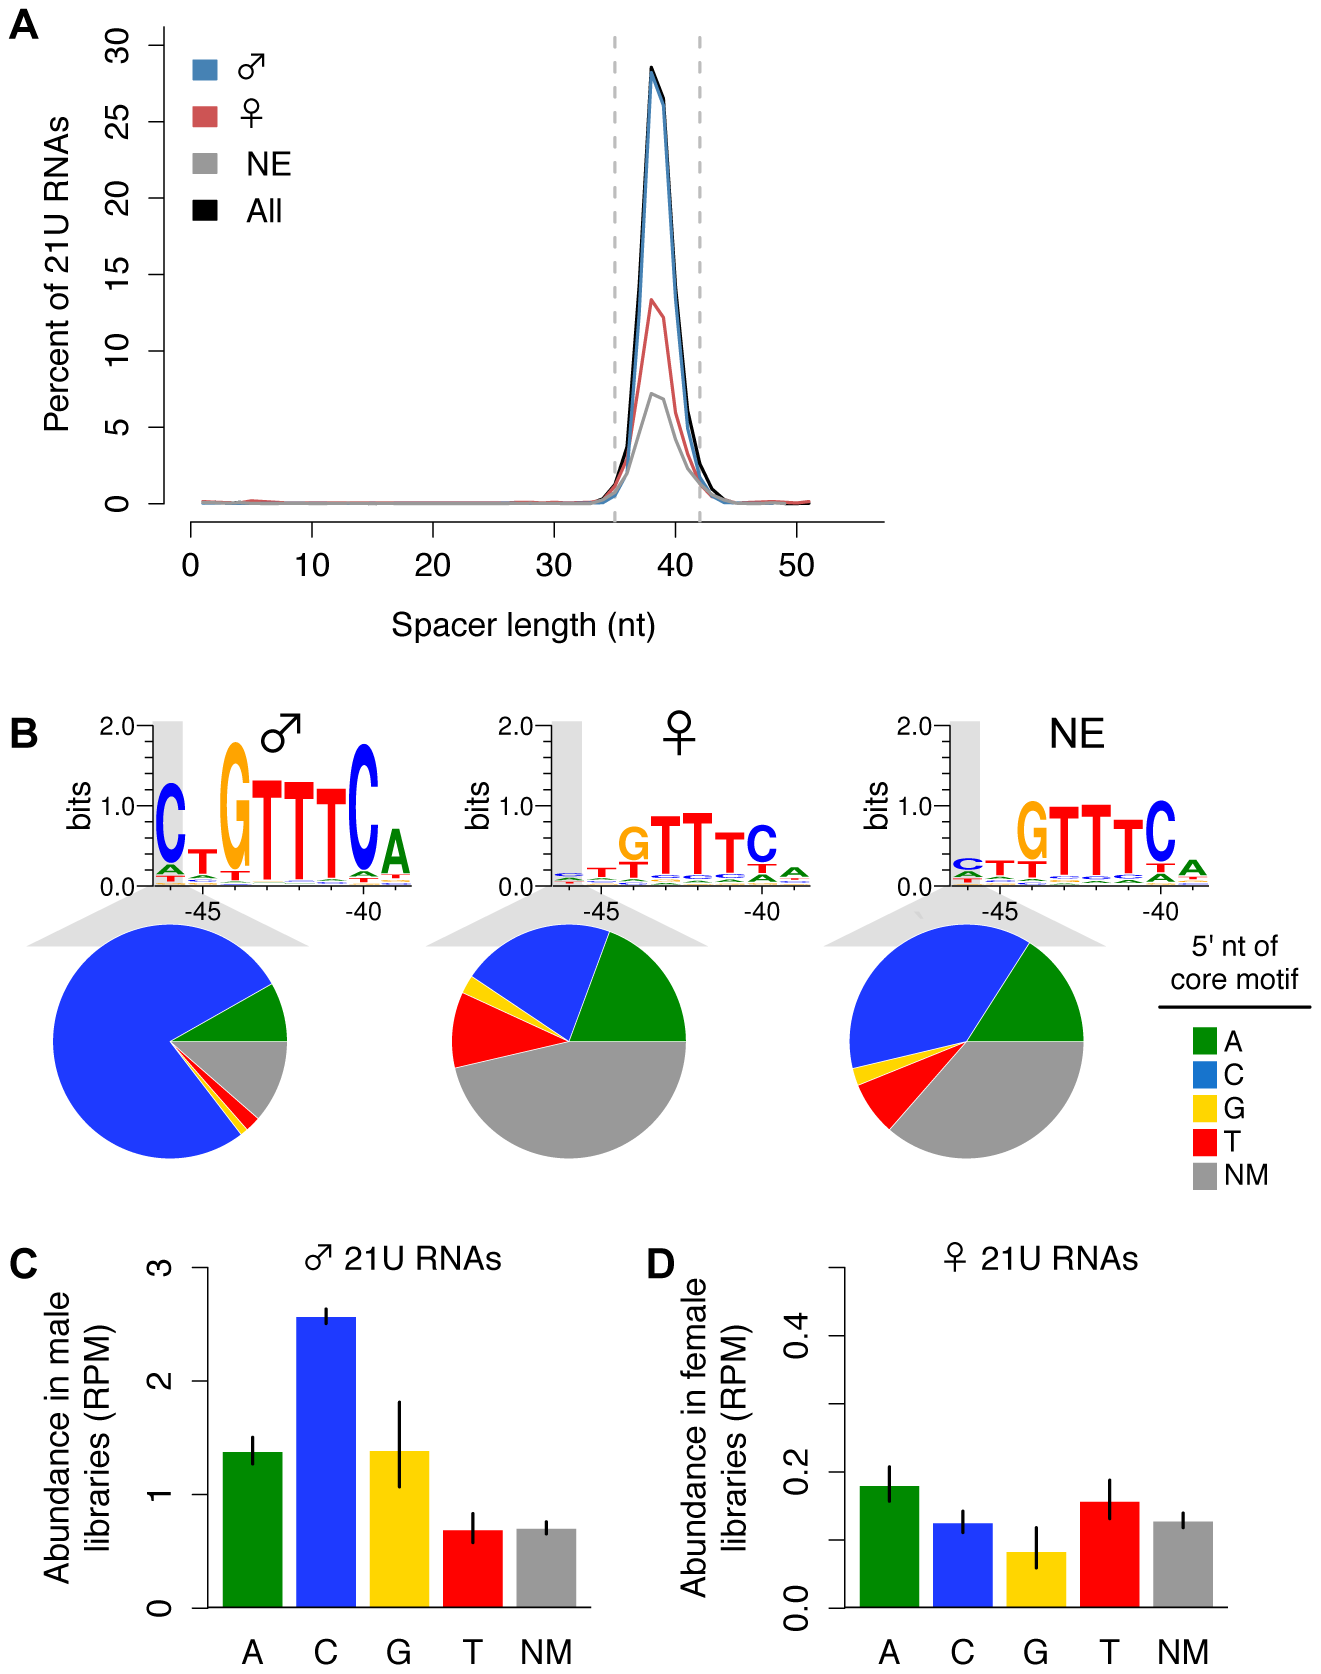 Variation in the core upstream motif correlates with 21U RNA germline enrichment.